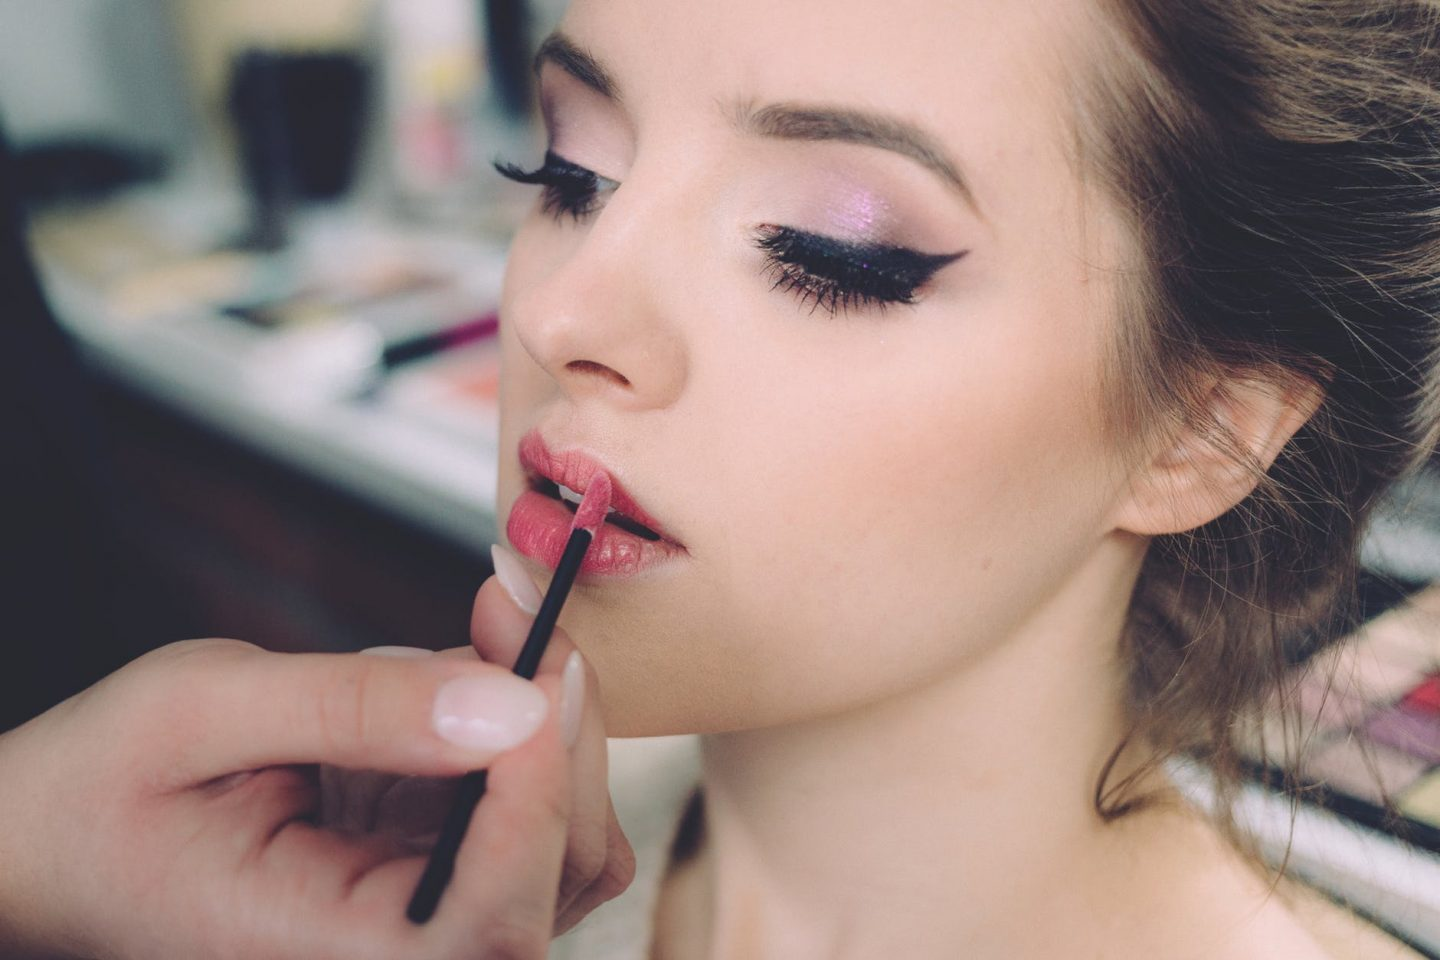 Beauty Career Tips and Tricks to Help Kick Start Your Business